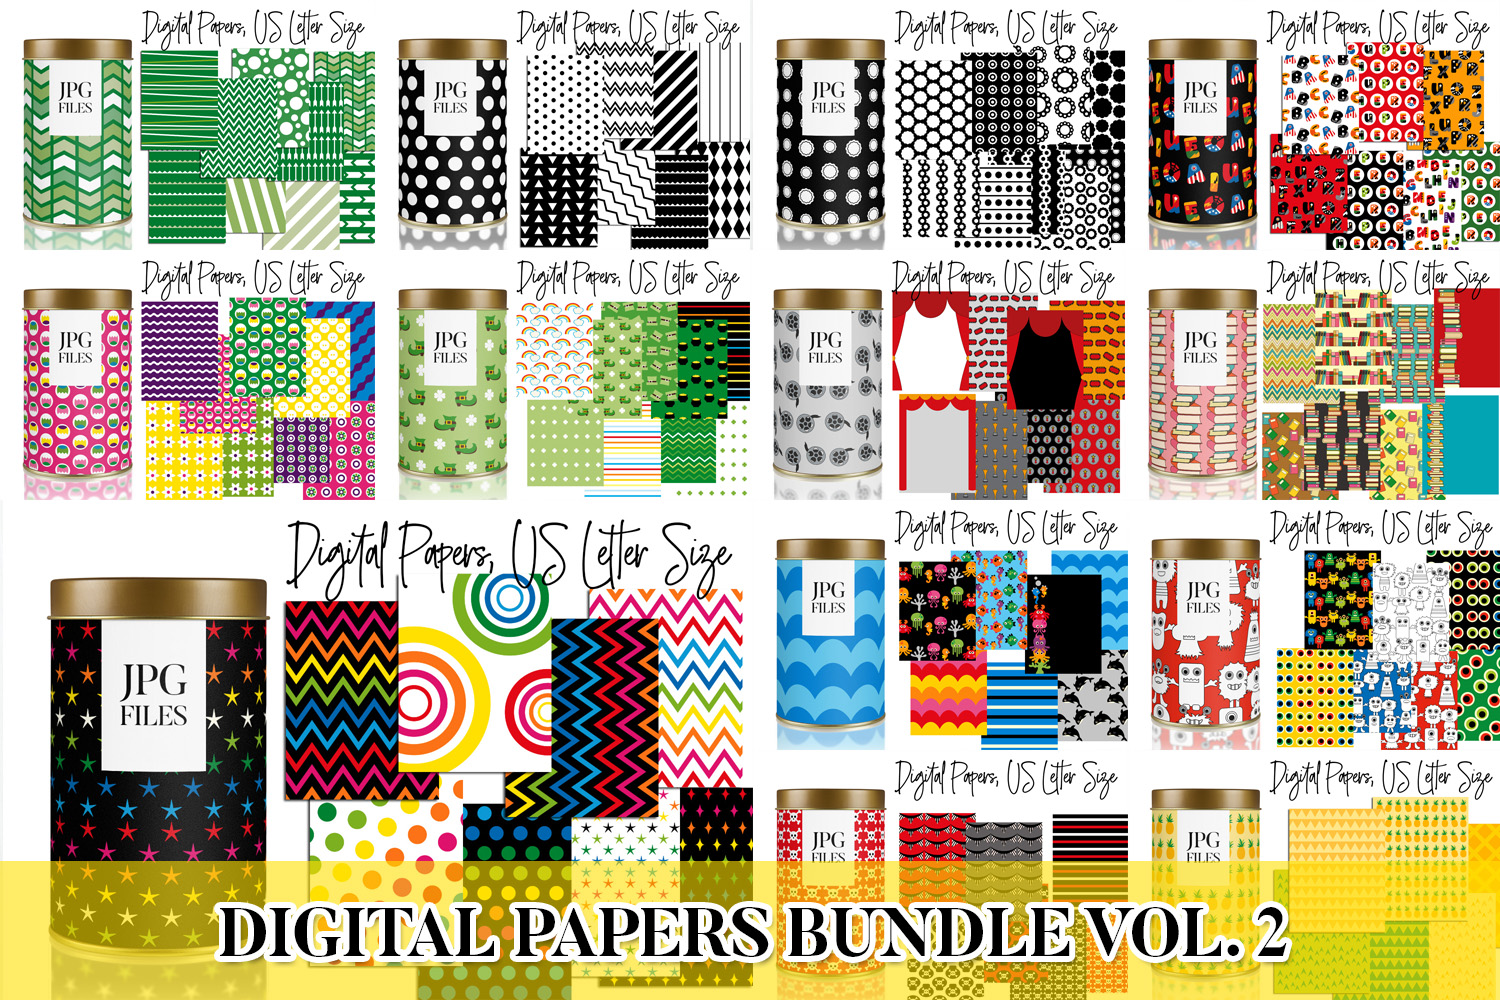 Digital Papers Bundle Vol. 2 - Background Patterns example image 1